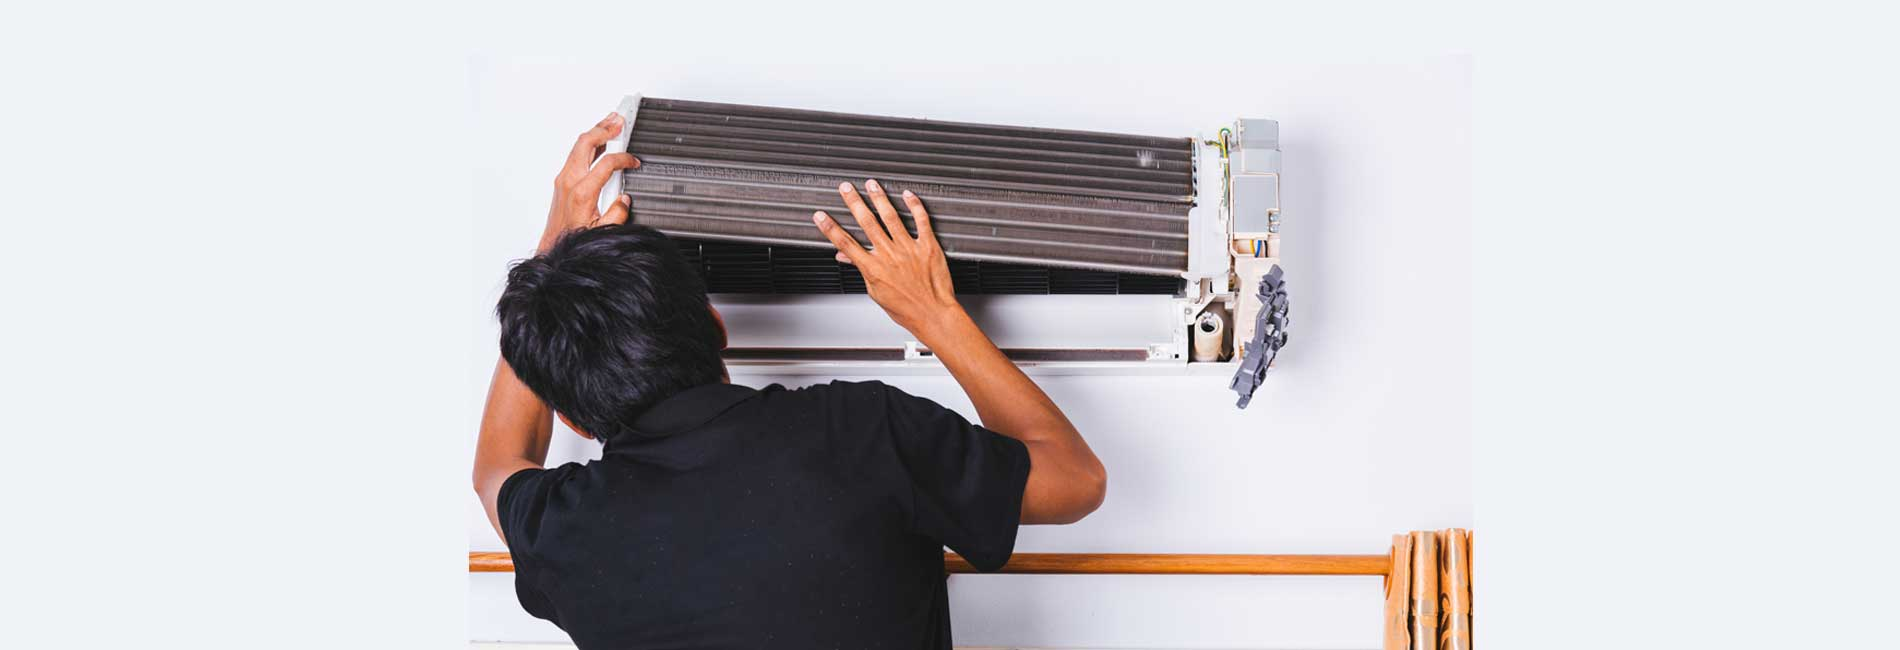 Air Conditioner Repair in Kovalam